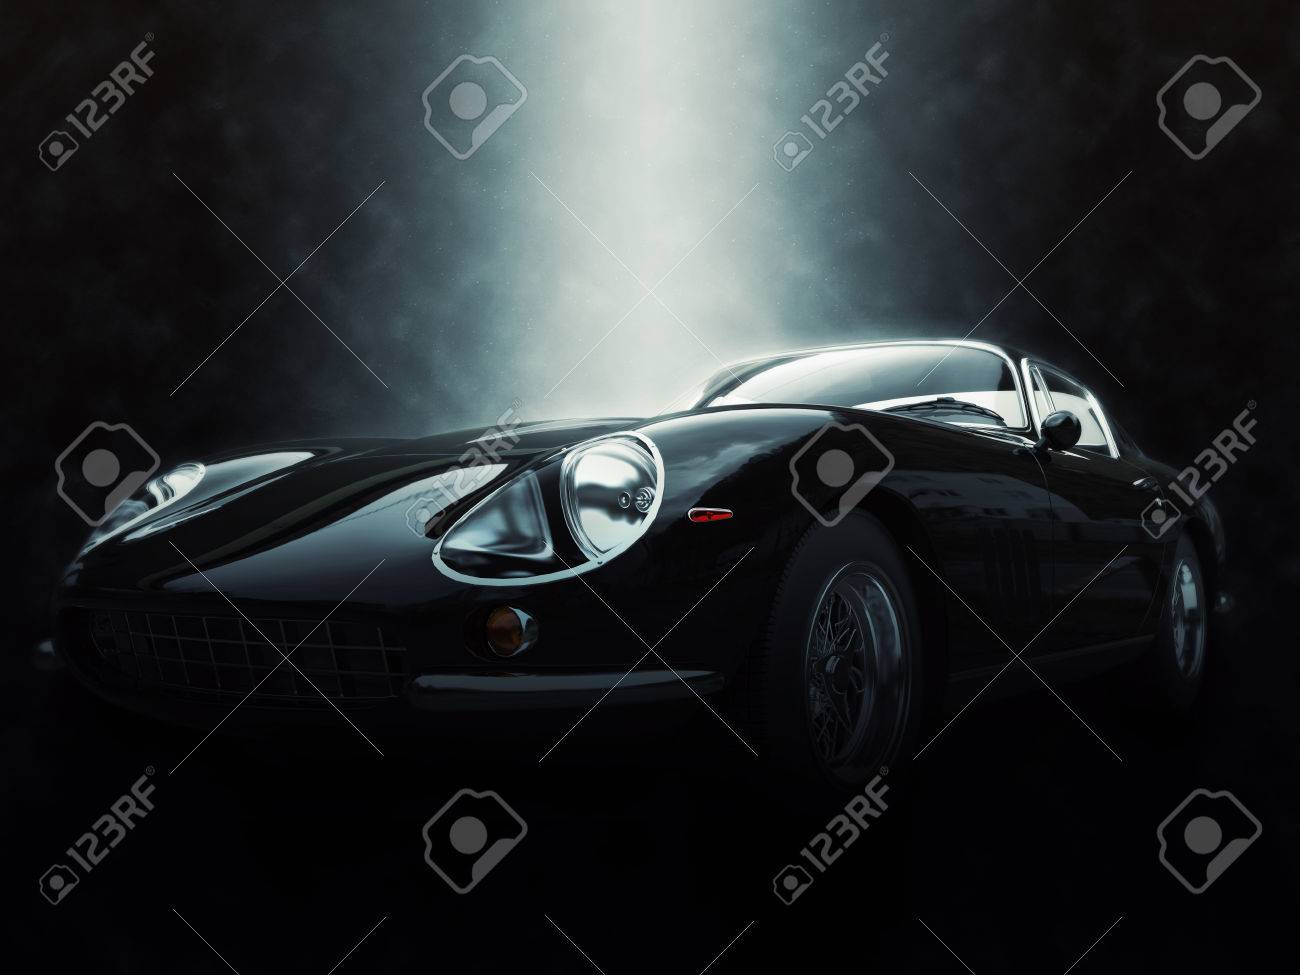 Black classic sports car - epic lighting effect - 3D Illustration Stock Illustration - 58924297 : epic lighting - www.canuckmediamonitor.org